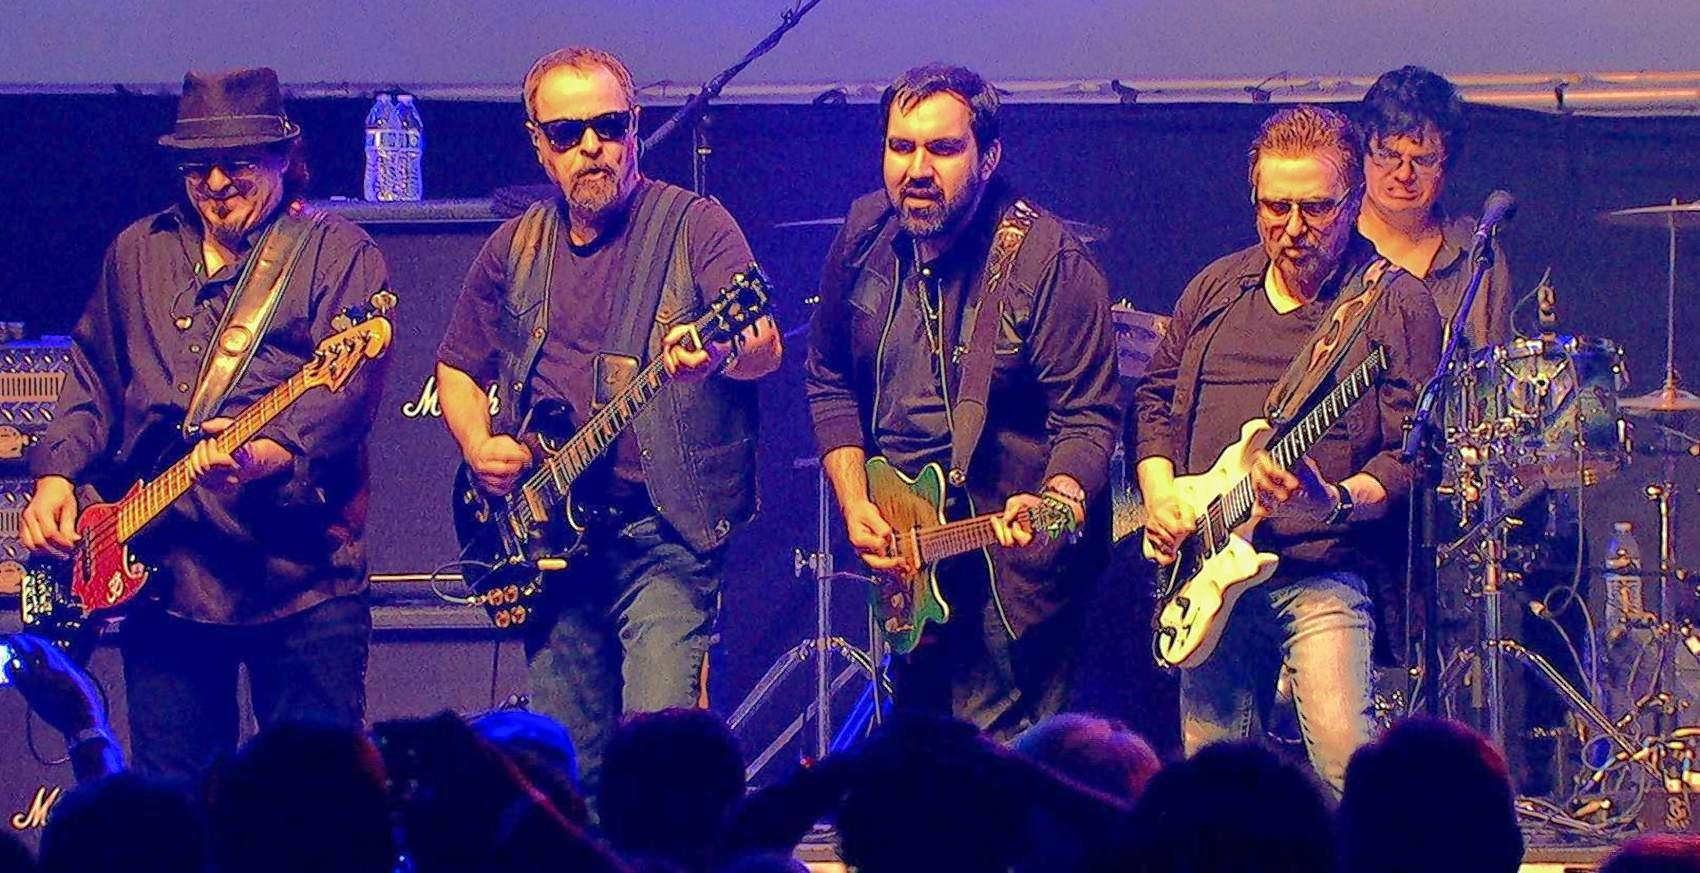 The iconic rock band Blue Oyster Cult will debut at the Marion Cultural and Civic Center on Oct. 14.